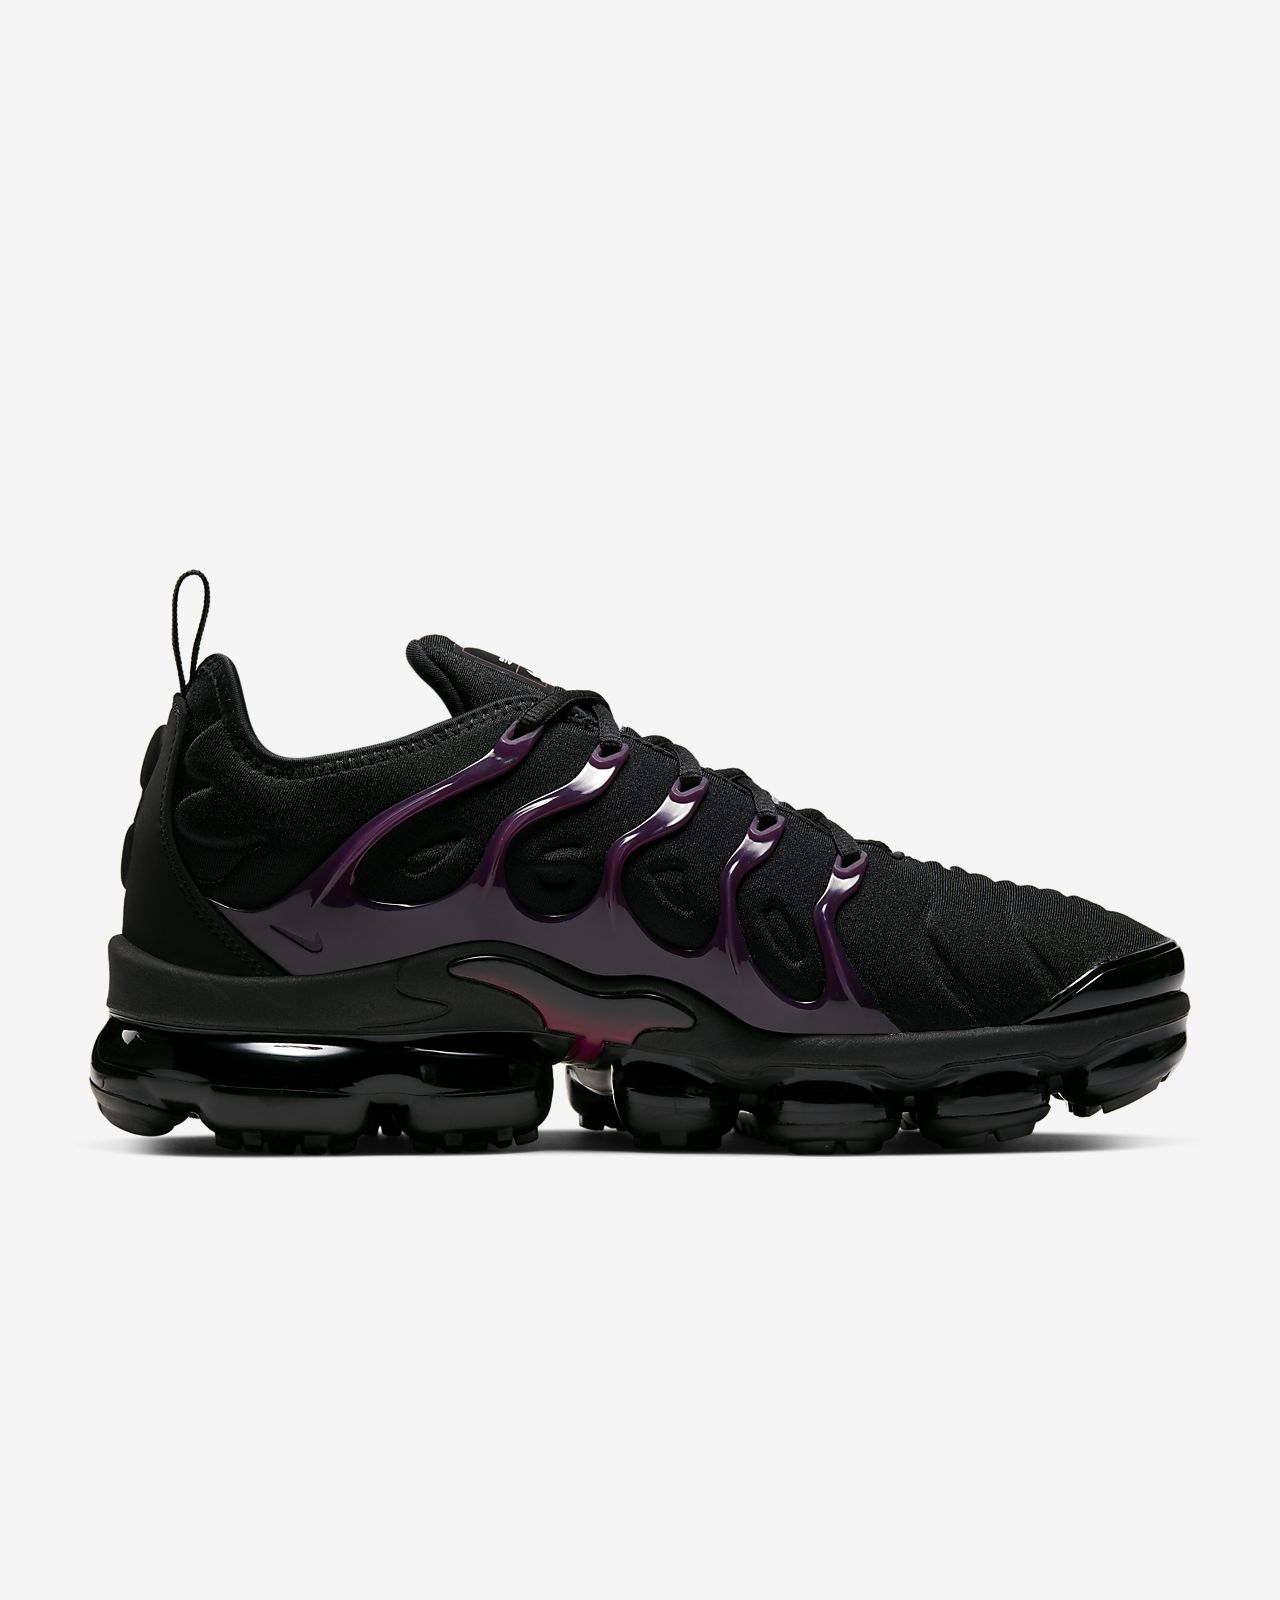 De Colores Sharp Nike Air VaporMax Rosado Naranja Negro